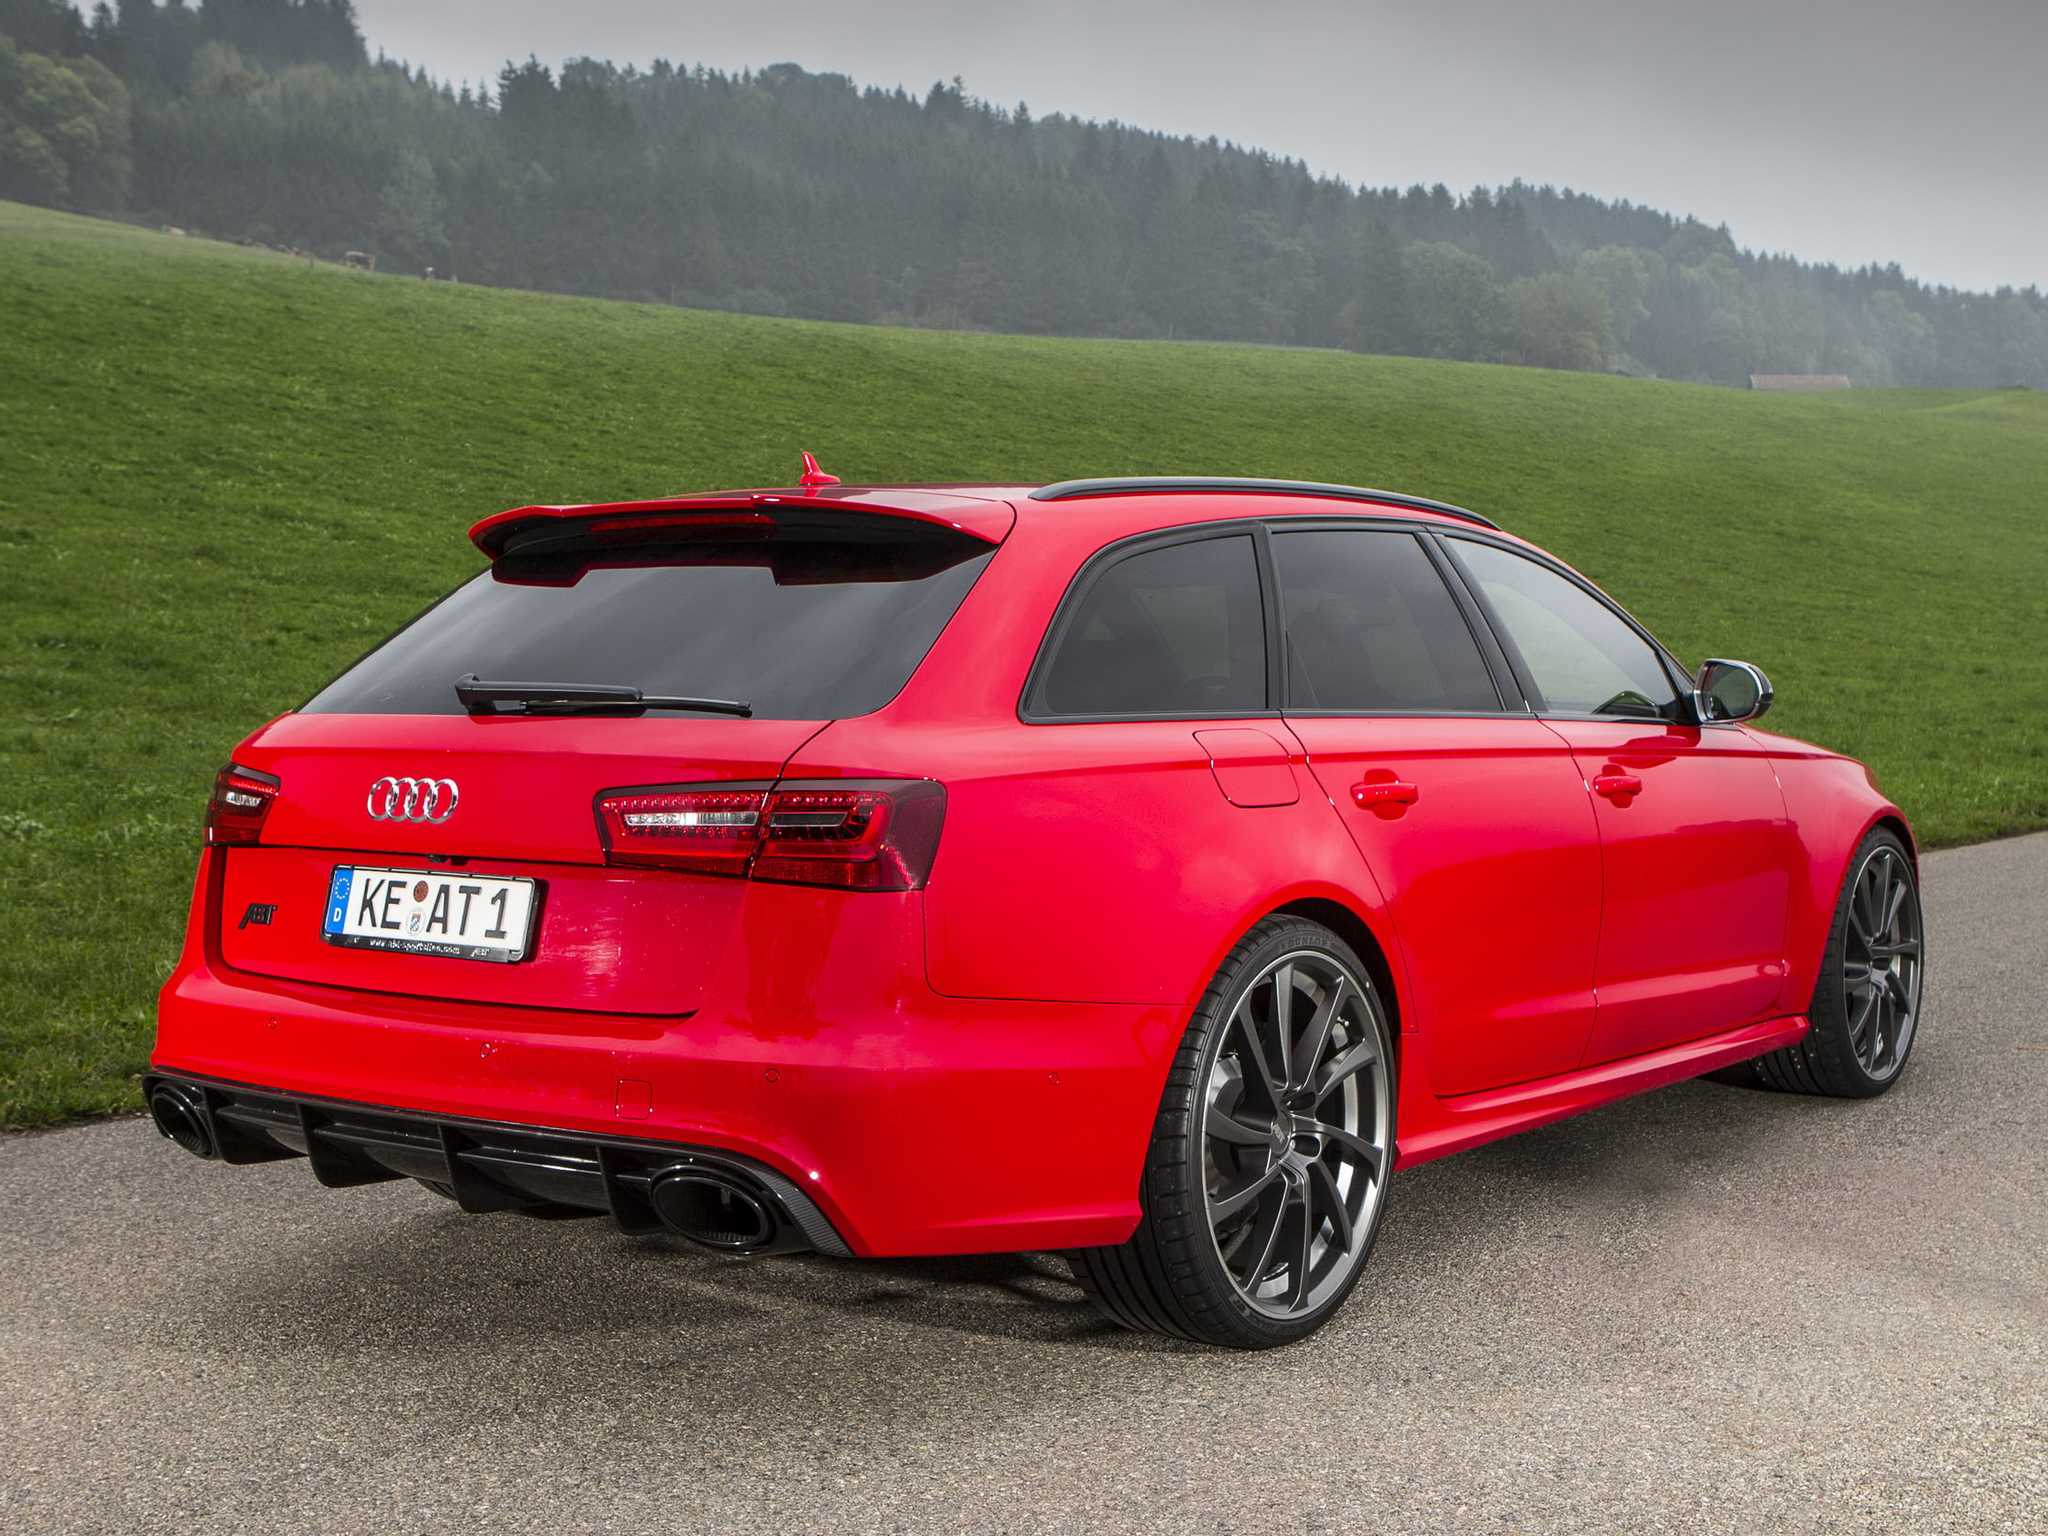 2013 abt audi rs6 avant 4gc7 stationwagon tuning r wallpaper 2048x1536 168569 wallpaperup. Black Bedroom Furniture Sets. Home Design Ideas